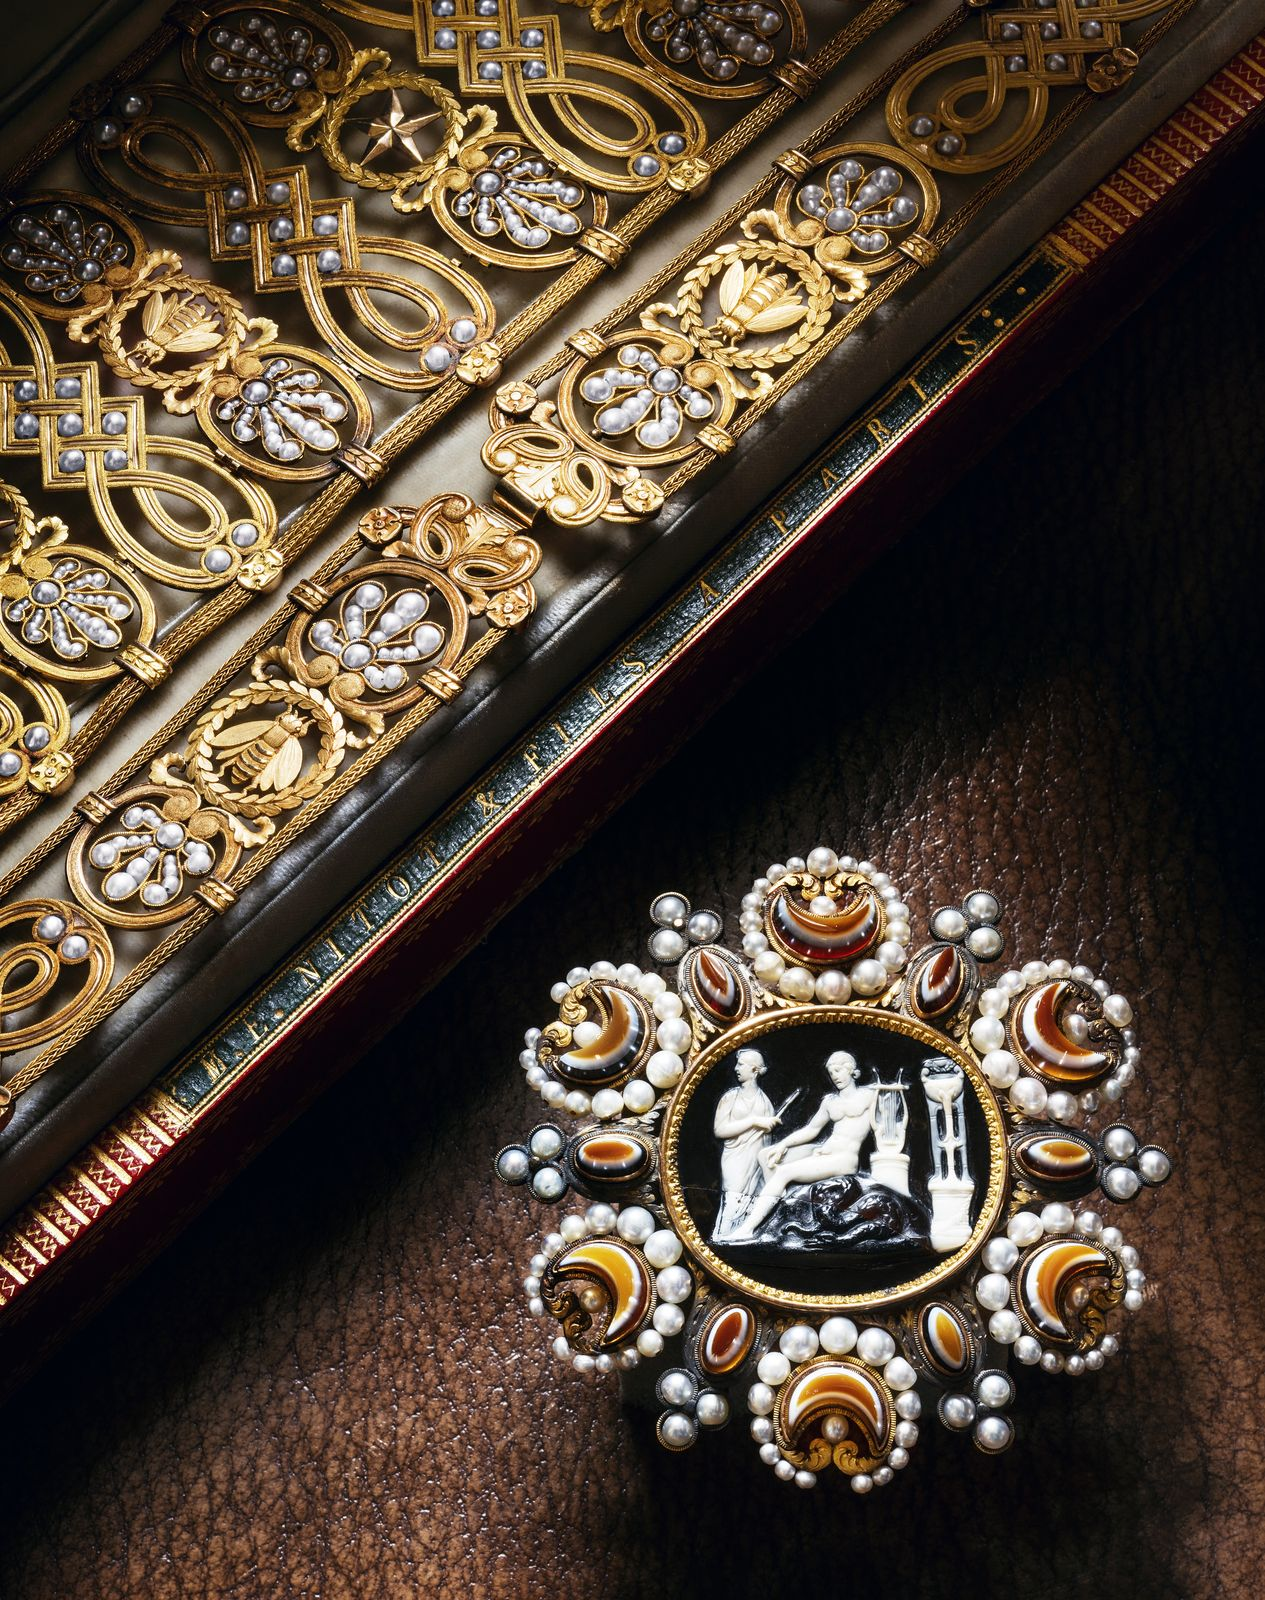 'Chaumet in Majesty: Jewels of Sovereigns since 1780' exhibition is open for public viewing from now till 28 August 2019, at the Grimaldi Forum in Monaco. (Photo: Chaumet)